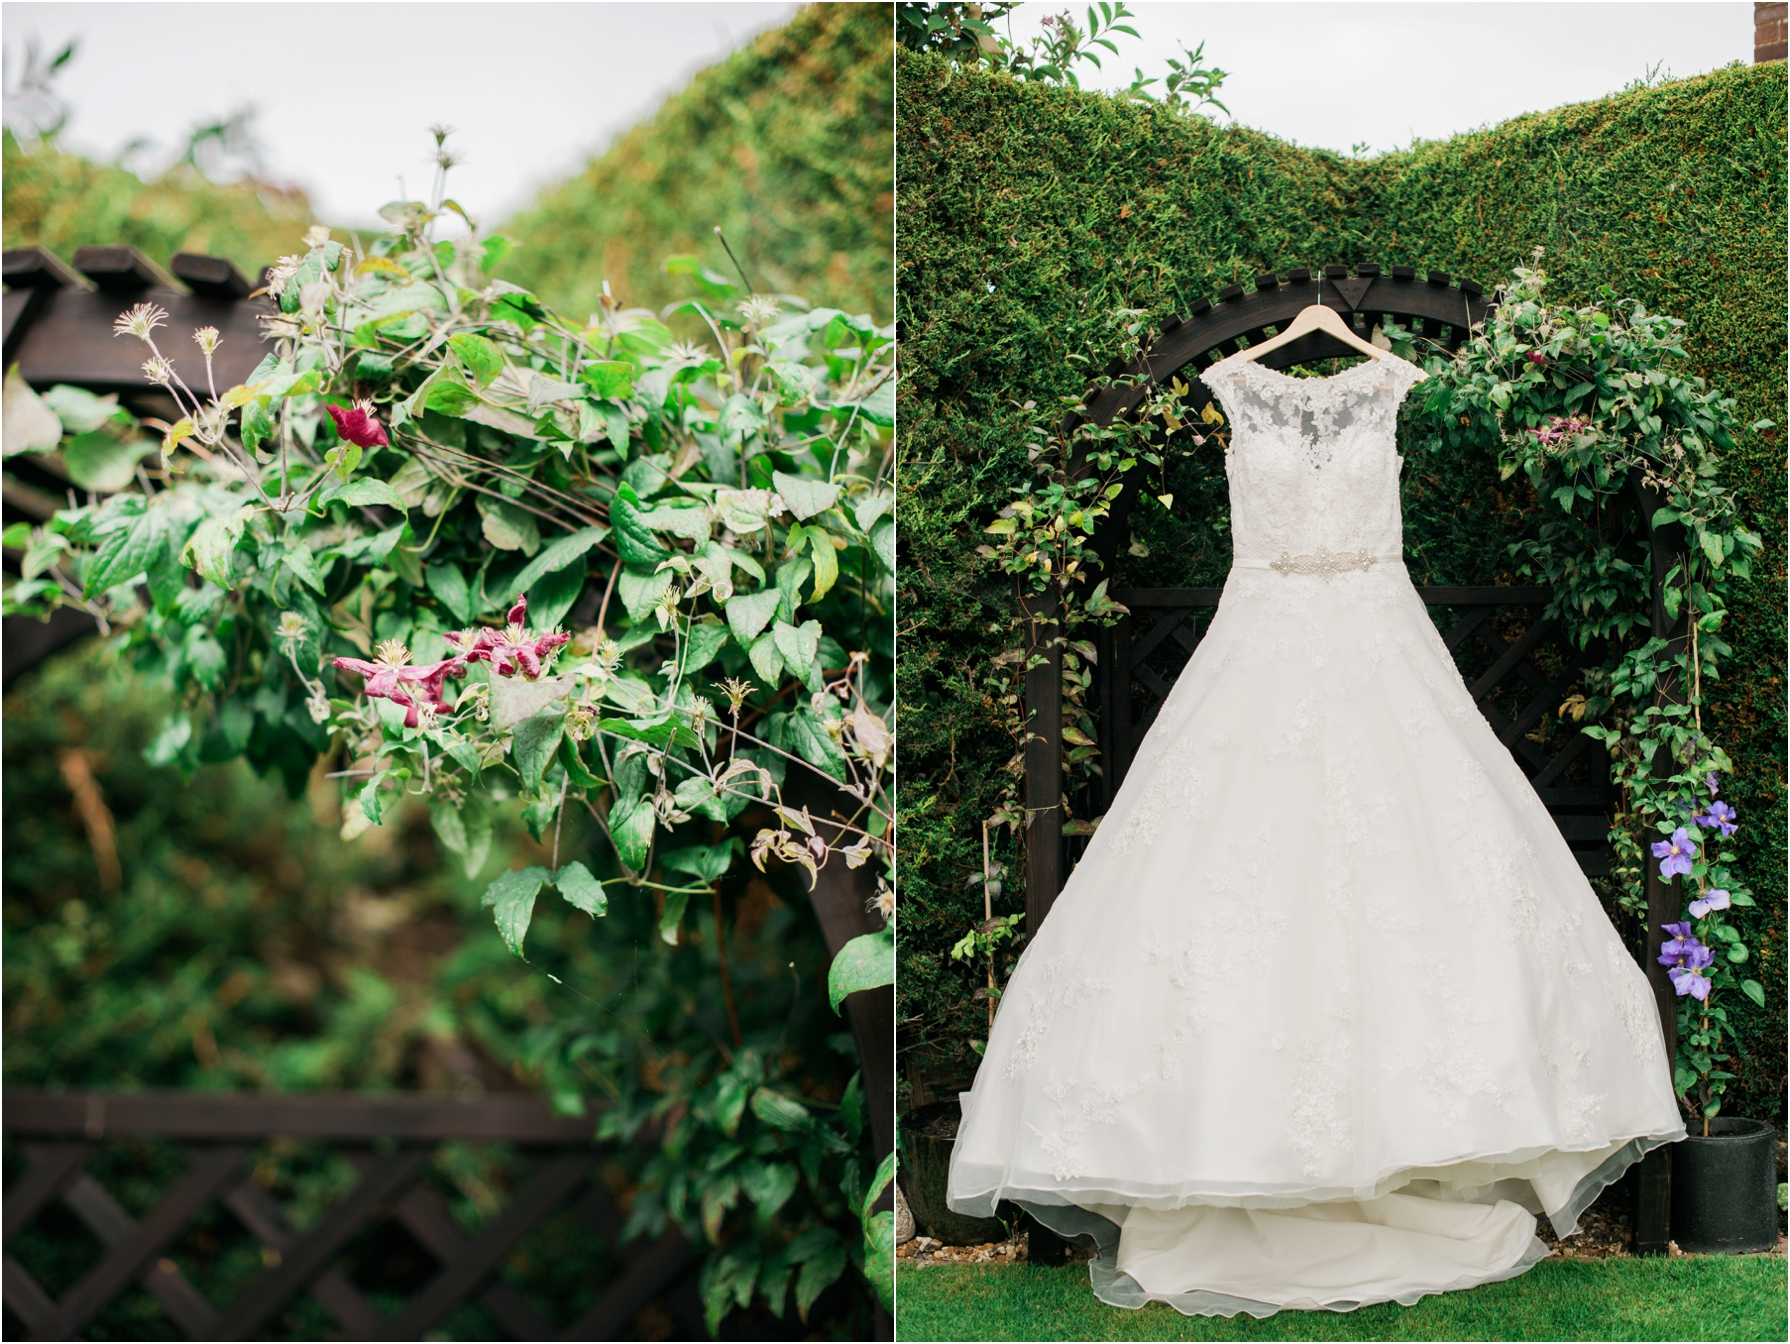 bridal gown hanging in a garden